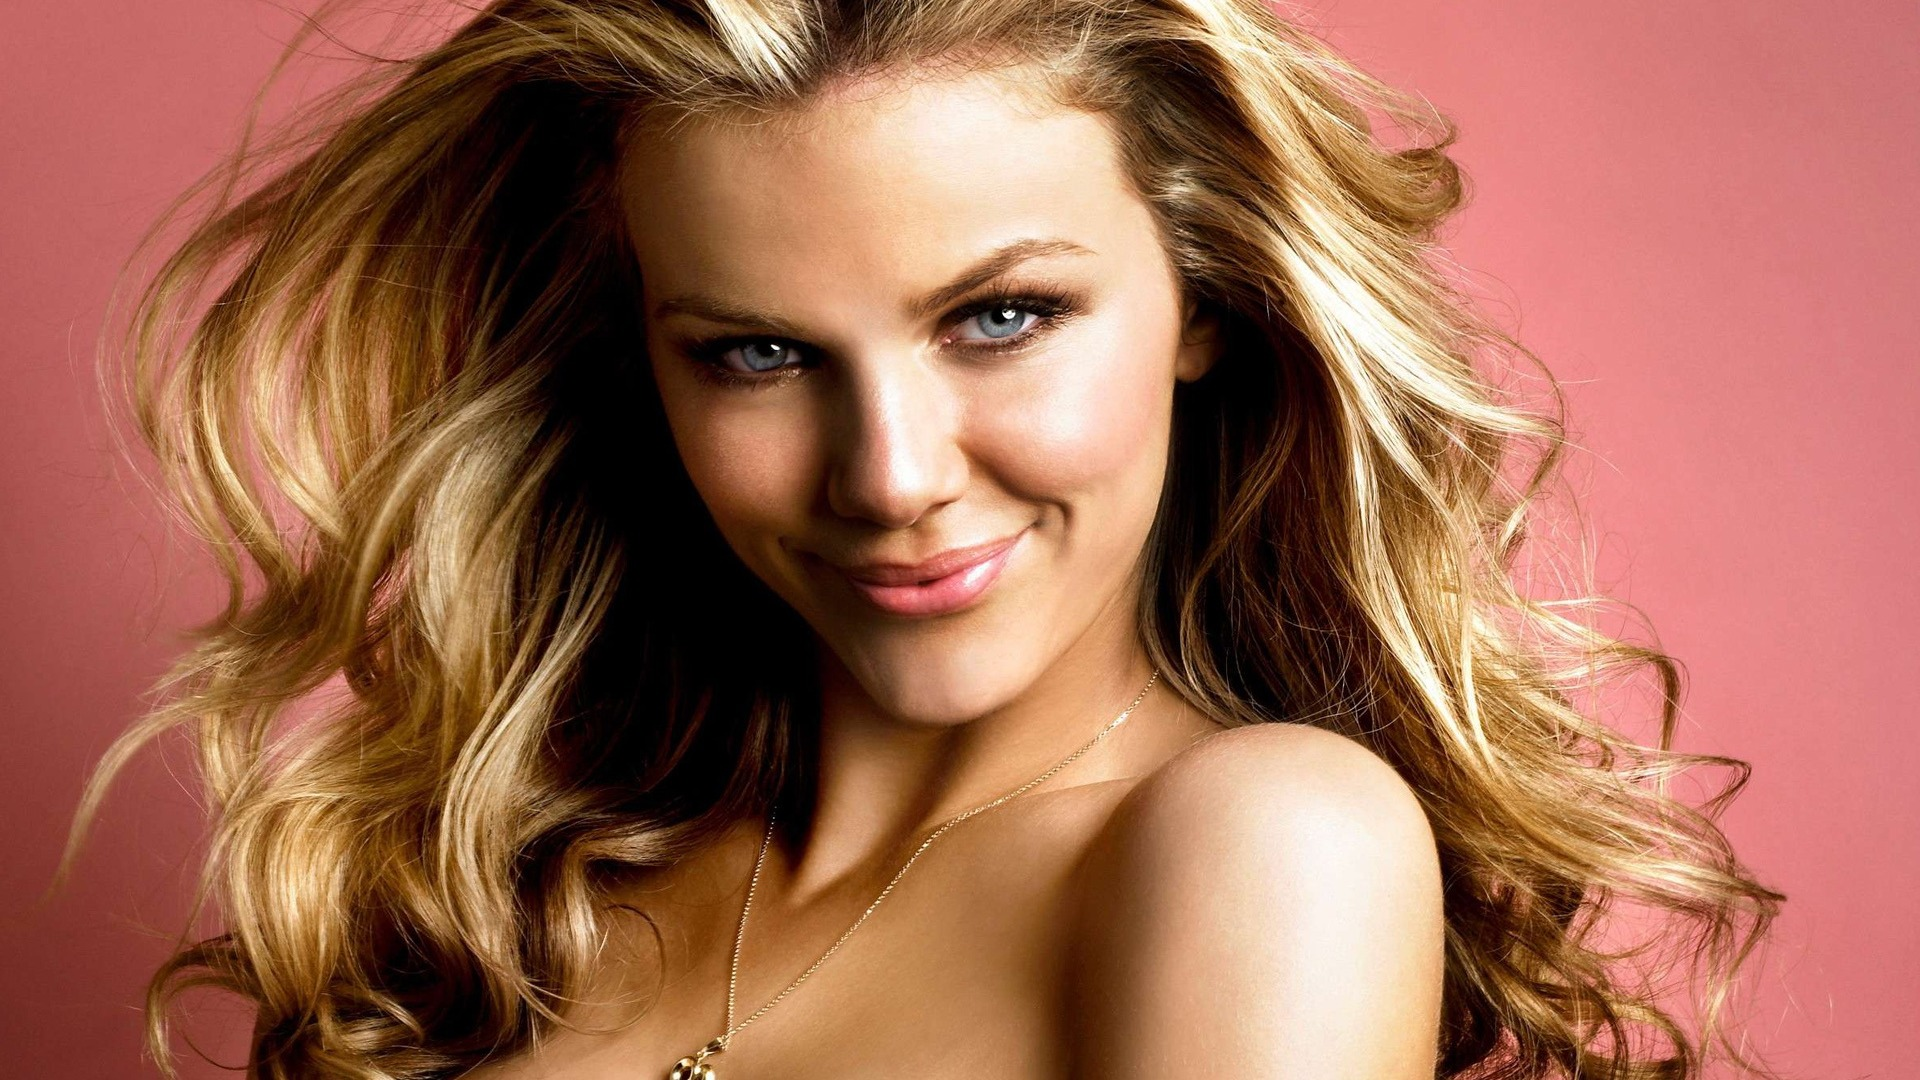 Brooklyn Decker #007 - 1920x1080 Wallpapers Pictures Photos Images